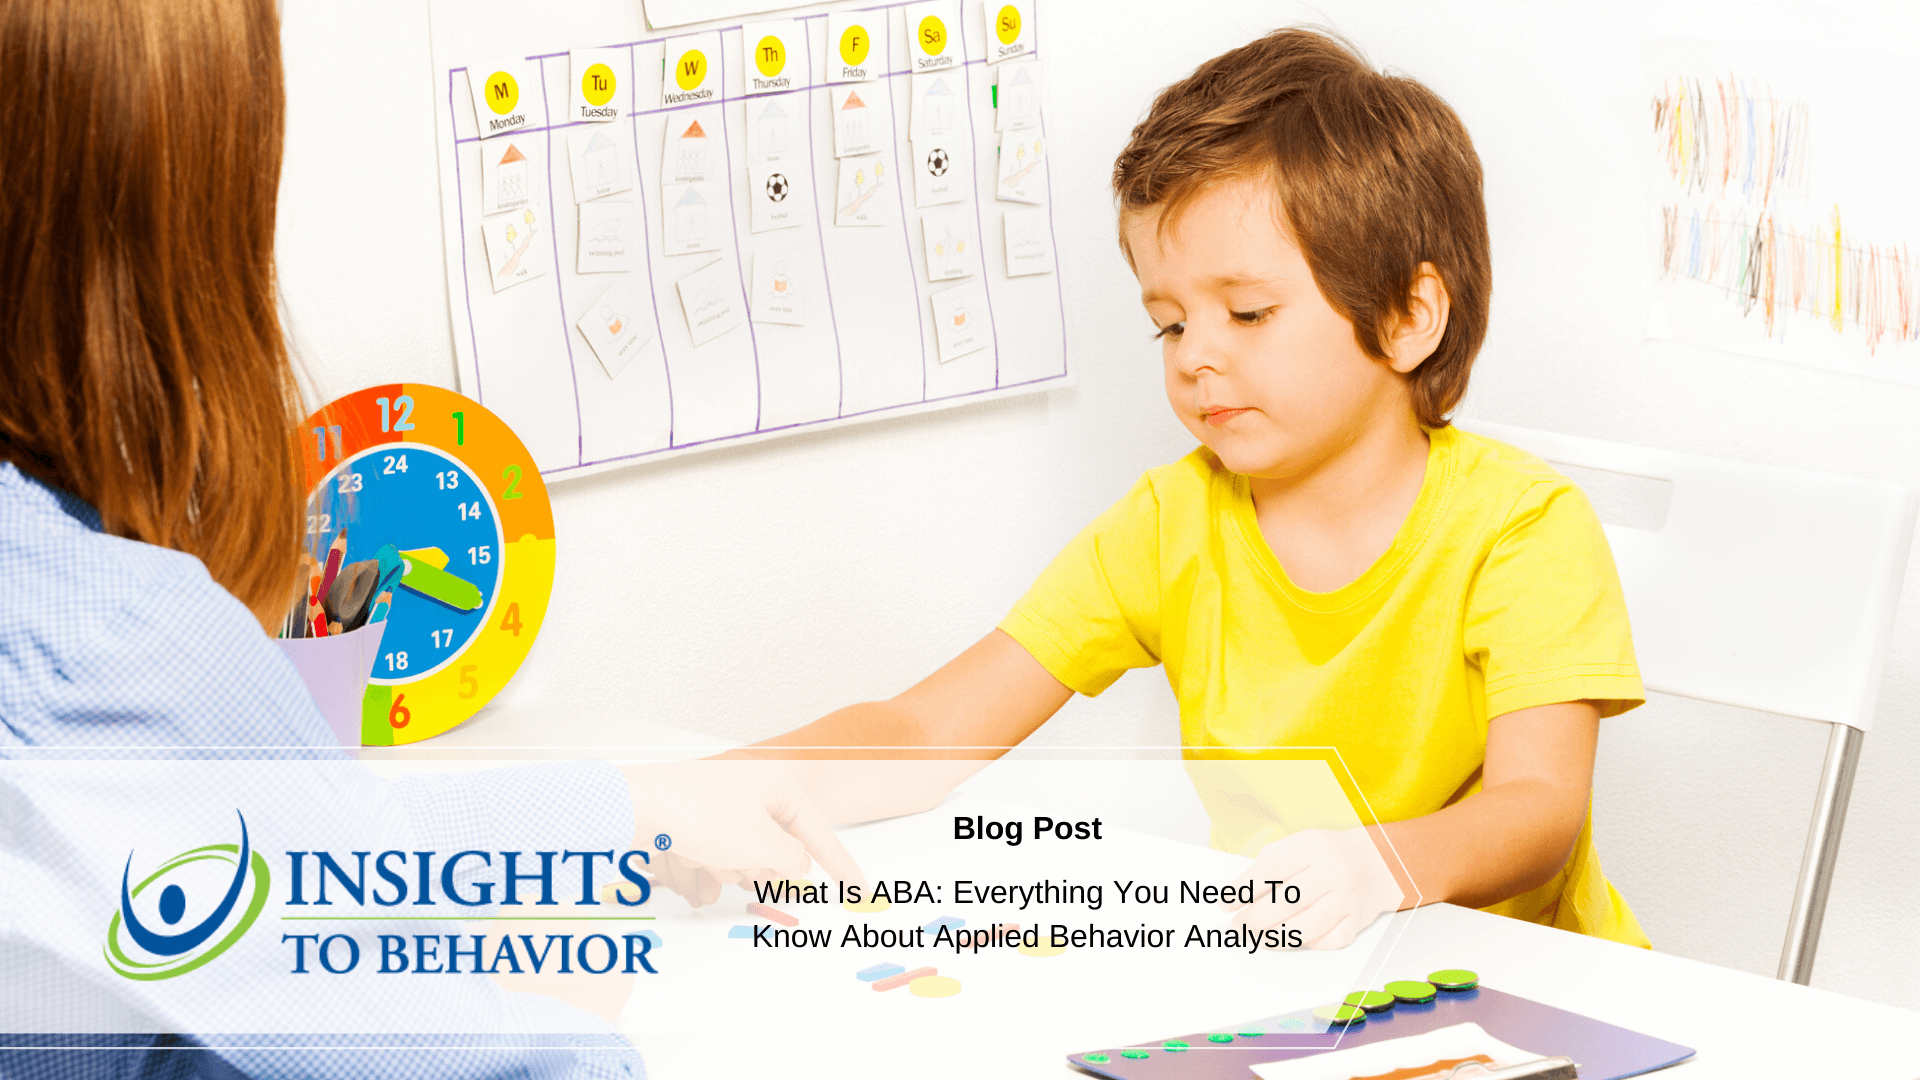 Insights to behavior blog post image template (3)